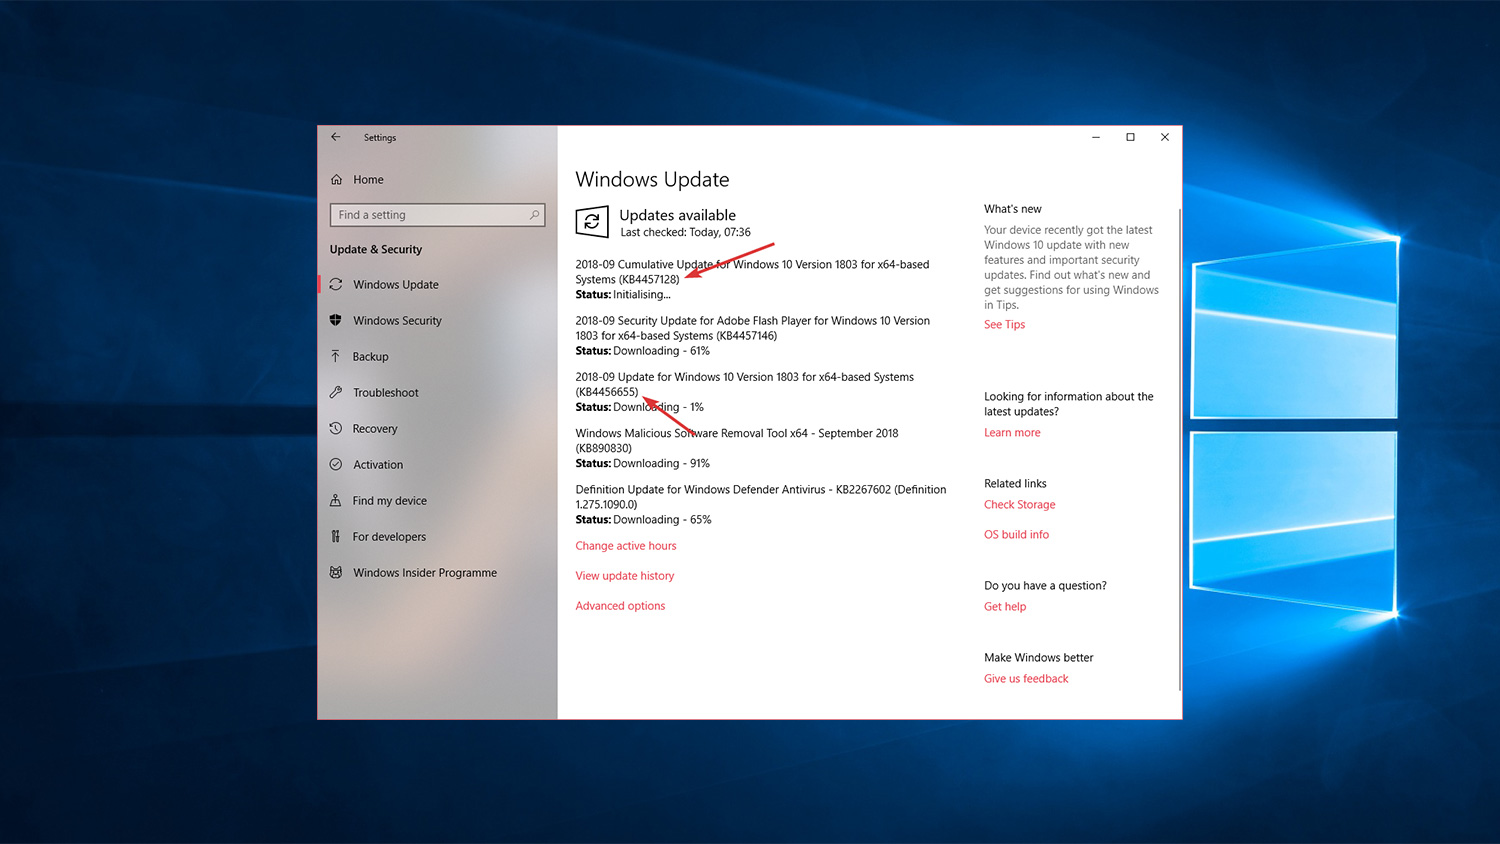 Direct Download Links for KB4457128 and KB4456655